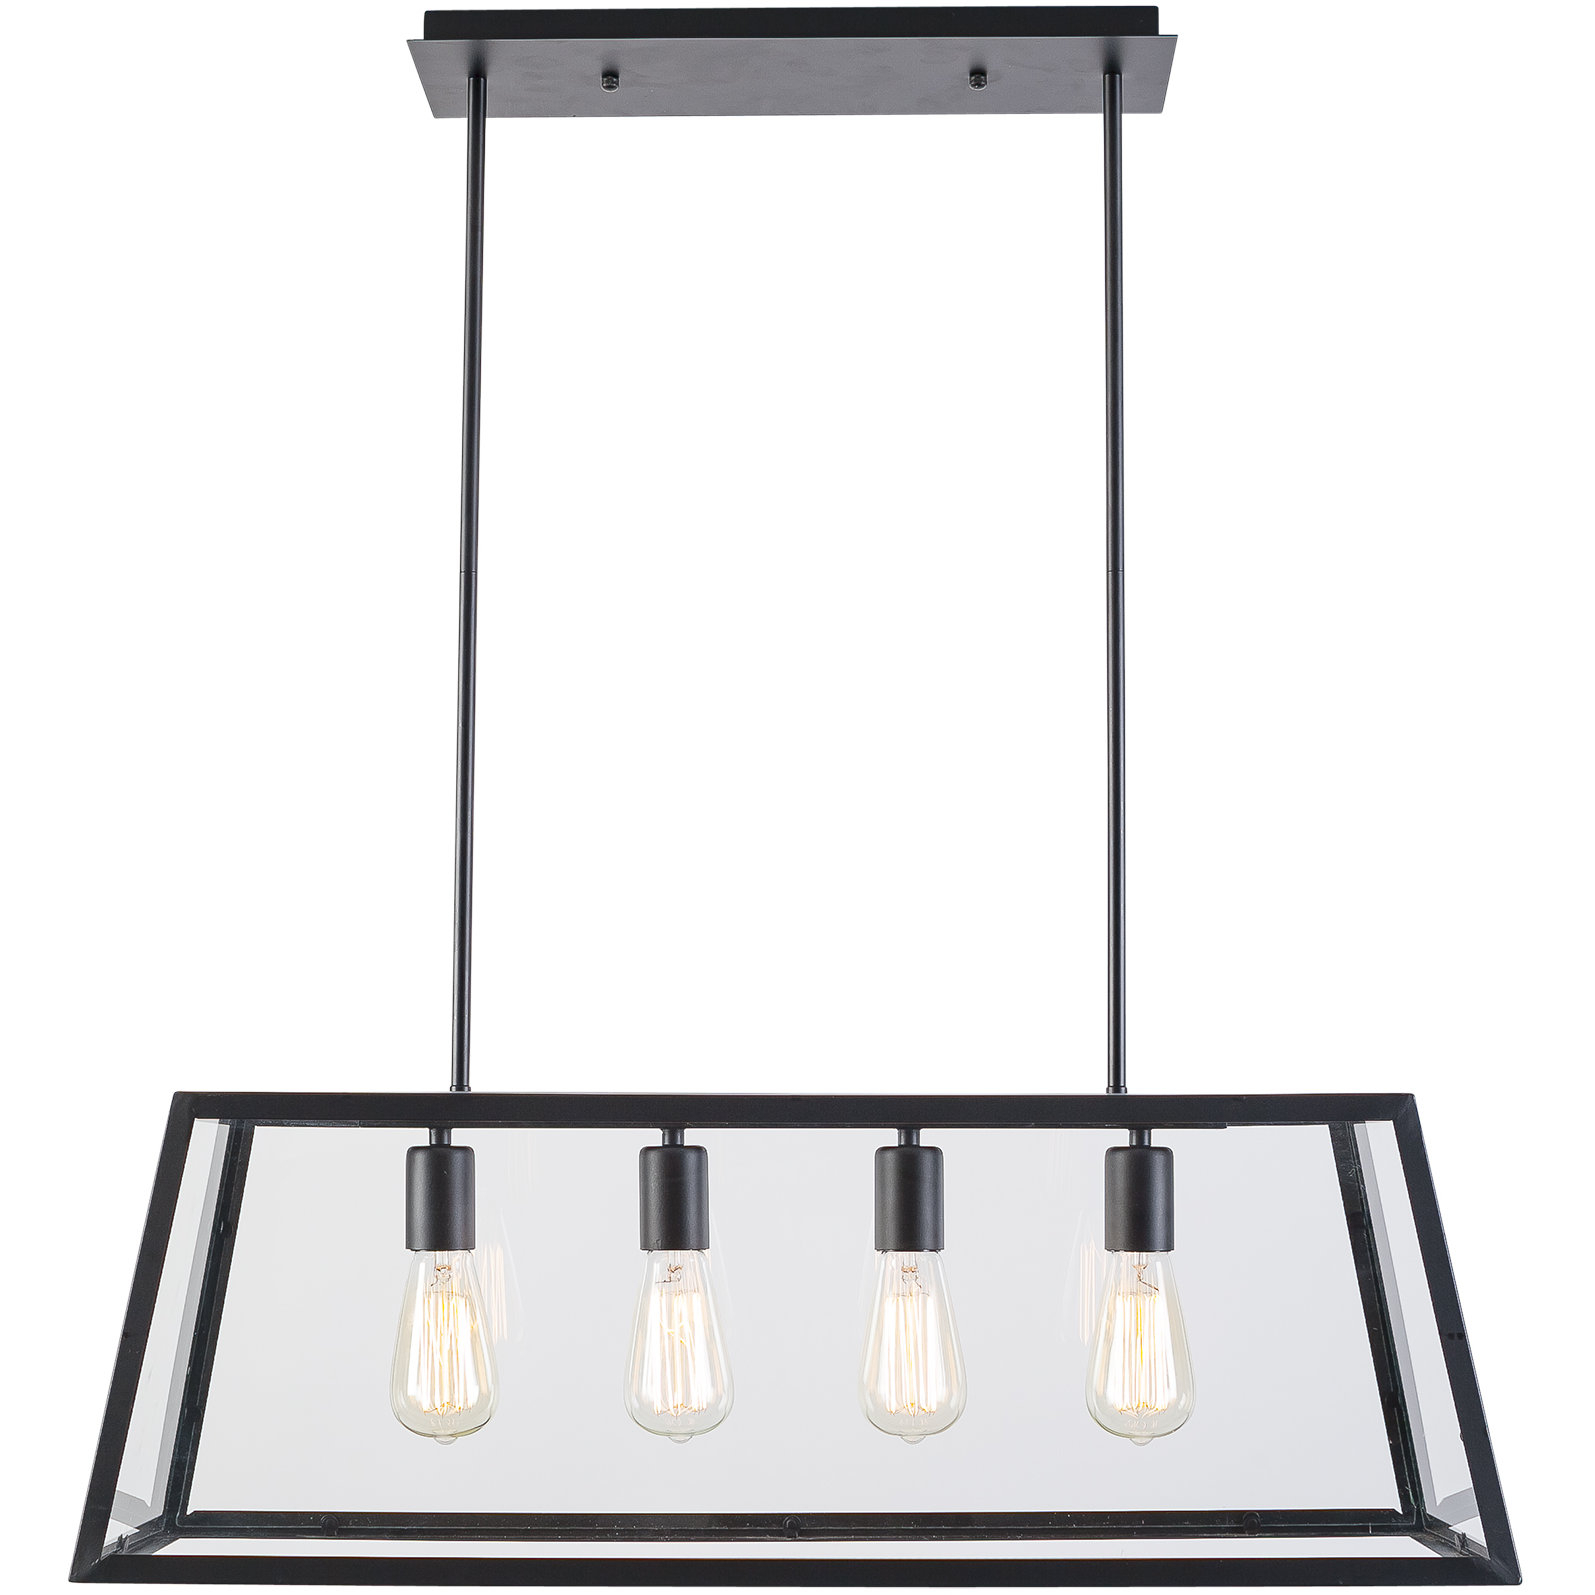 Shubrick 4 Light Kitchen Island Pendant | Wayfair In Smithville 4 Light Kitchen Island Pendants (View 24 of 30)